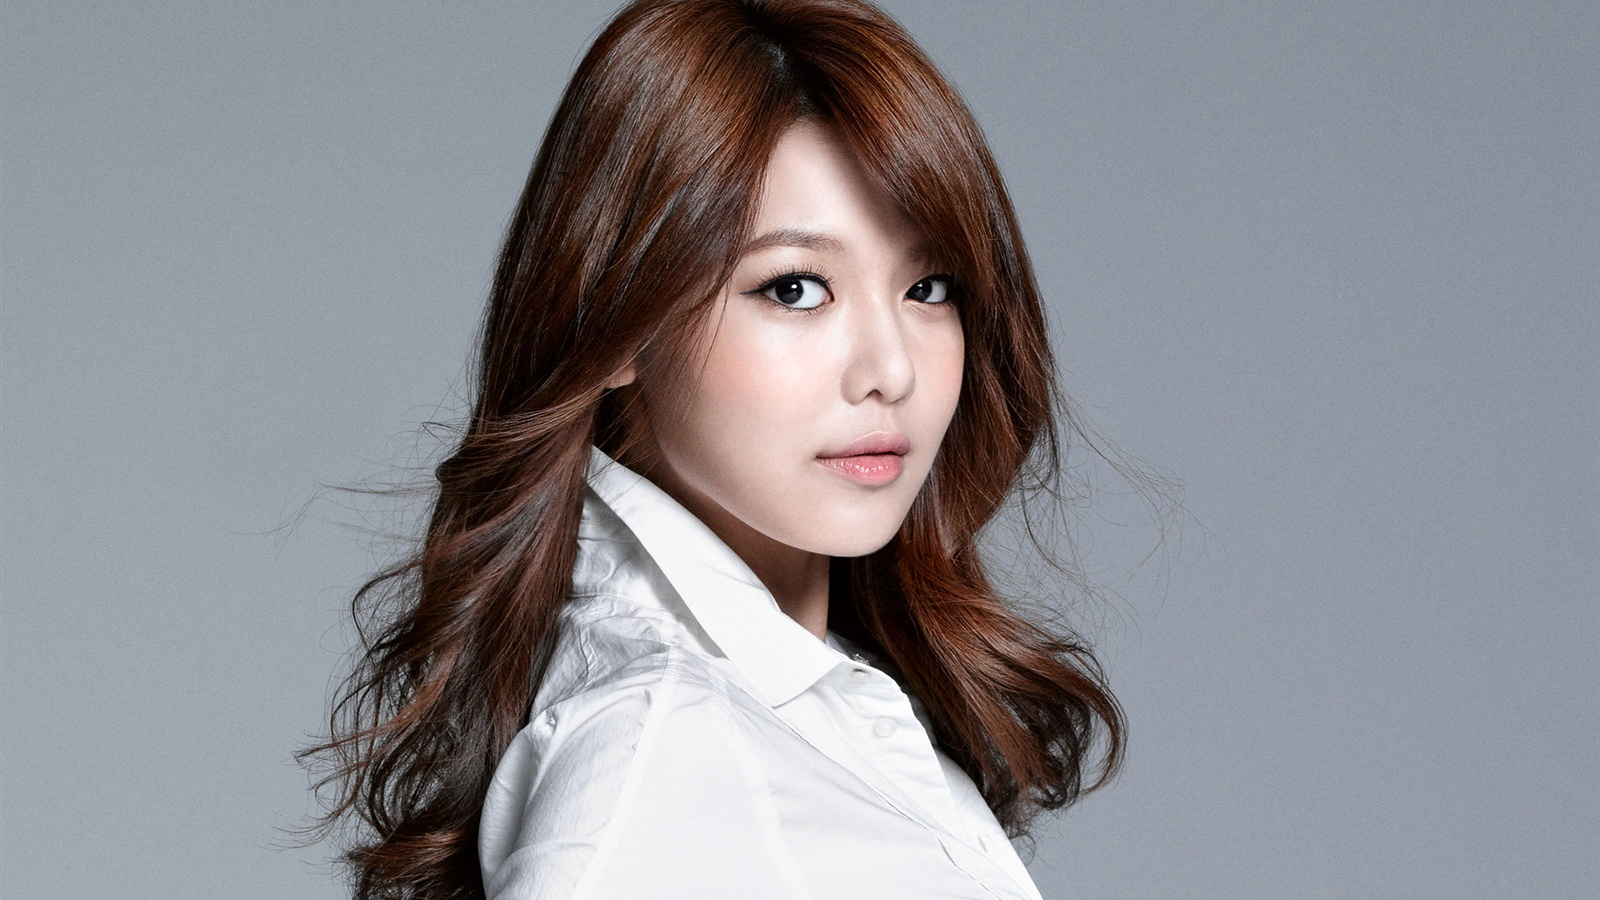 Girls' Generation's Sooyoung Joins Snapchat!